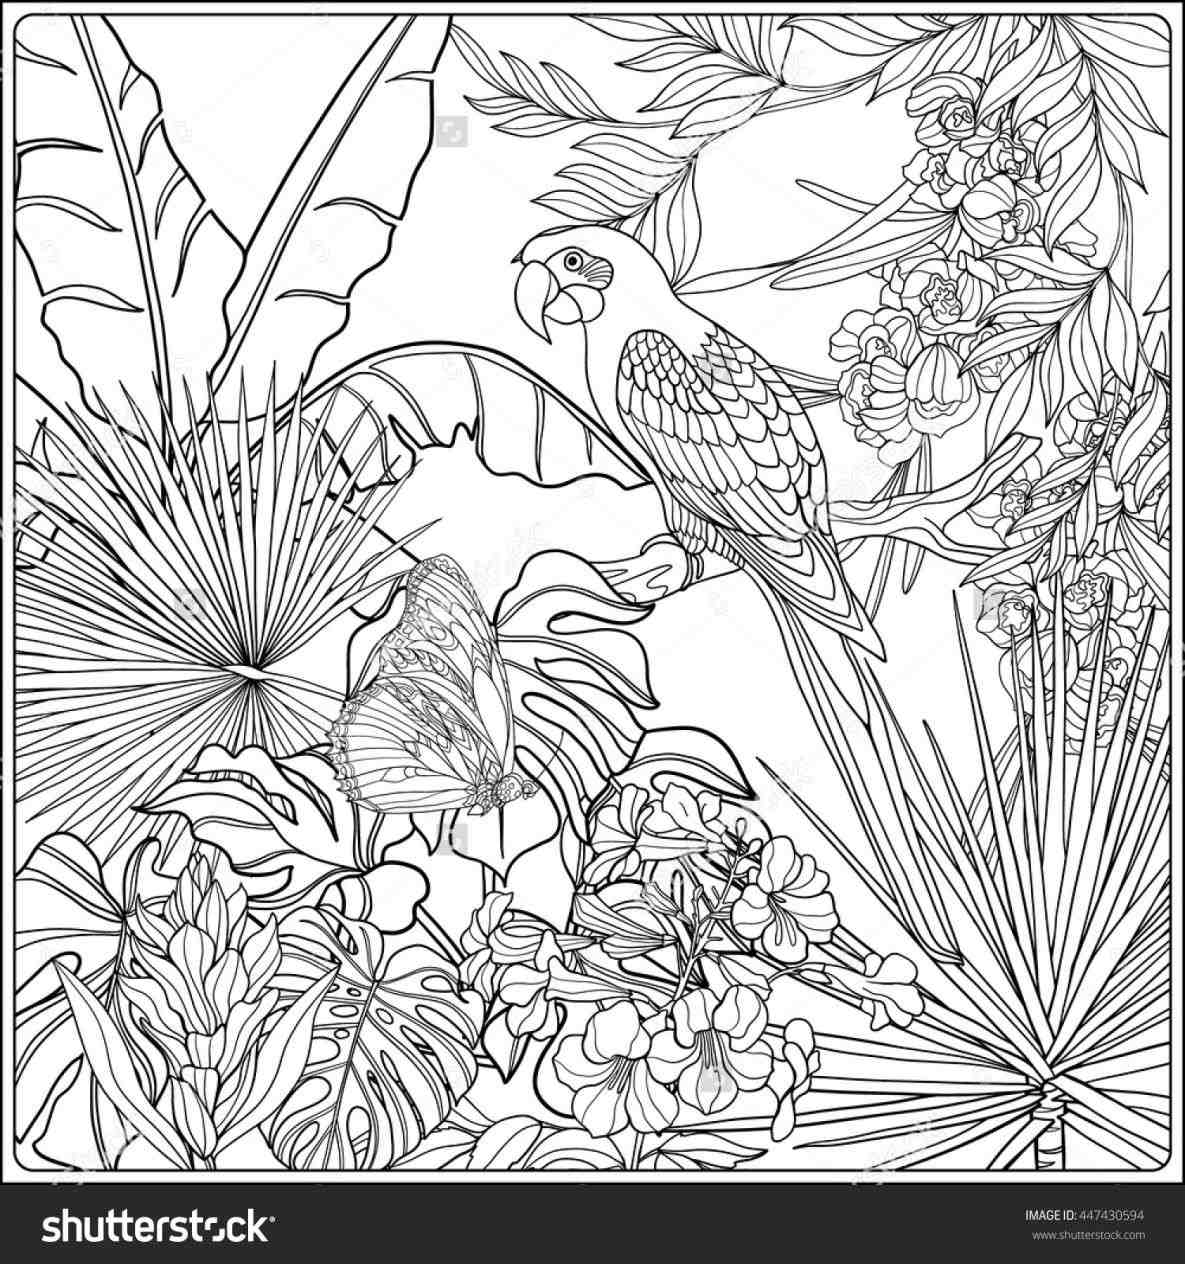 1185x1264 Jungle Plants Coloring Pages Of The Jungle Coloring Page Pages